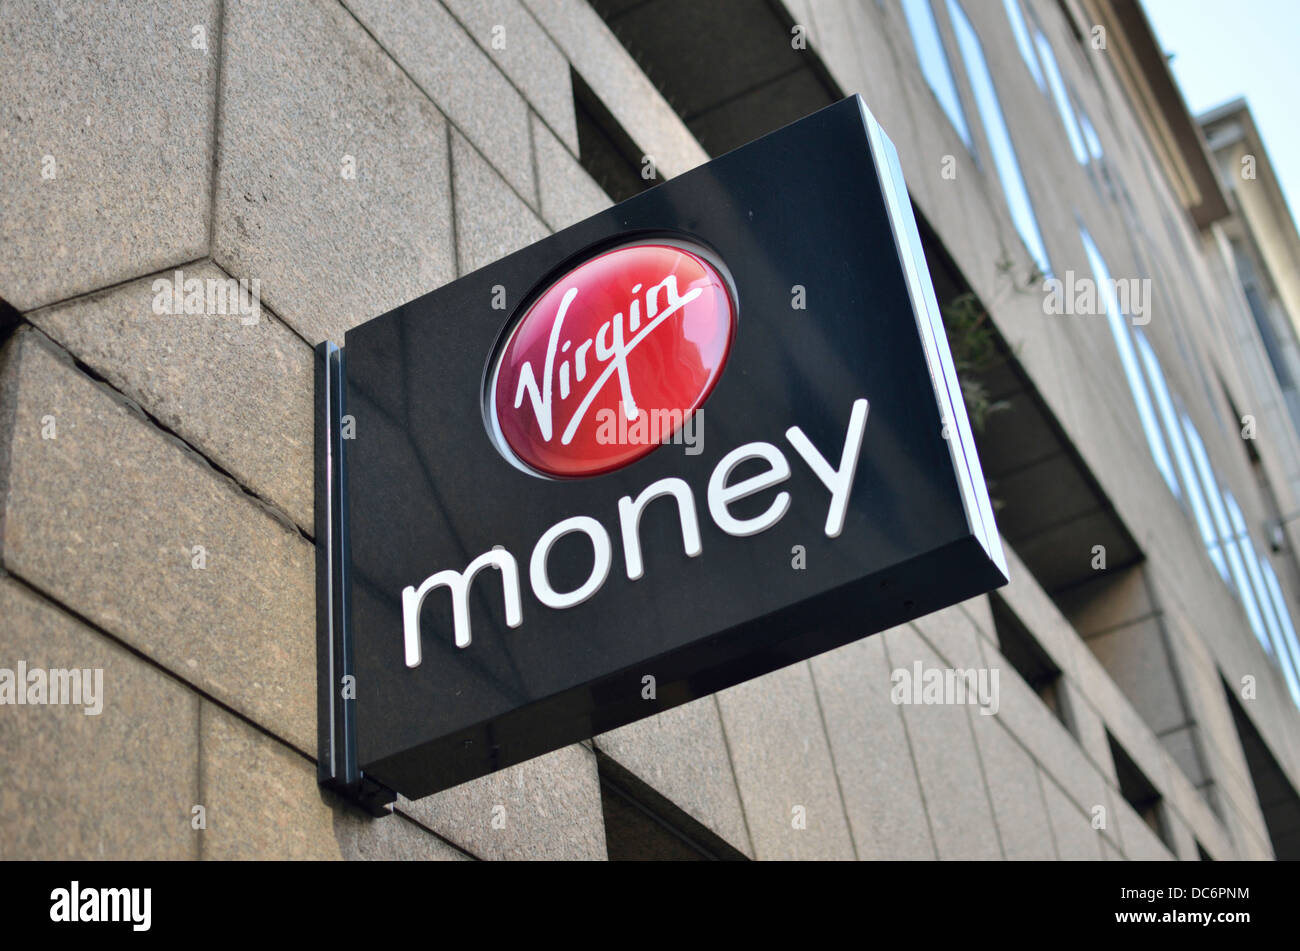 Virgin Money bank branch in Moorgate, City of London, London, UK. - Stock Image